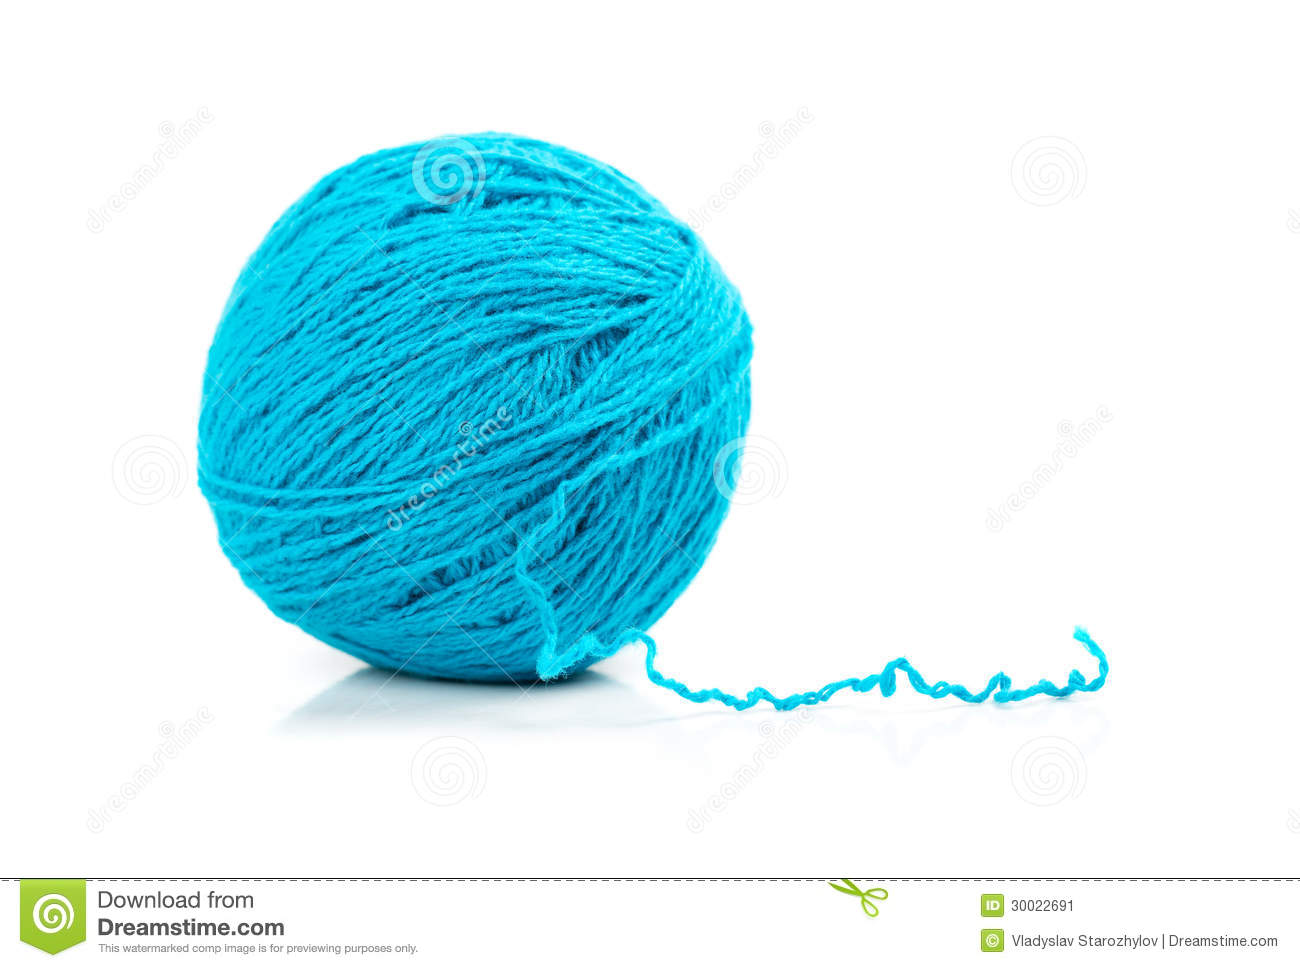 ball of yarn - photo #27